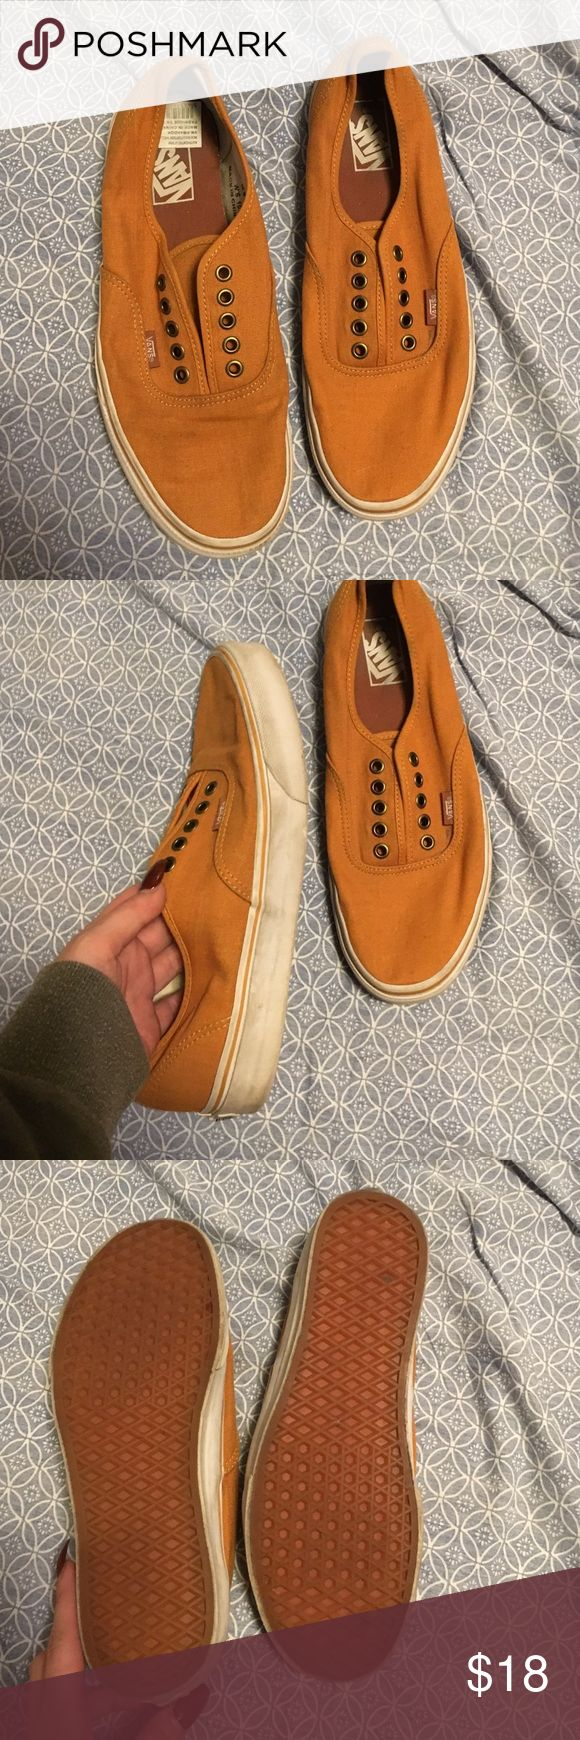 Rust orange vans men's 9 I think my boyfriend wore them maybe twice outside then they just sat in the closet. Only a few scuffs but they can be washed off and I'll do my best to wash them before shipping. Vans Shoes Sneakers